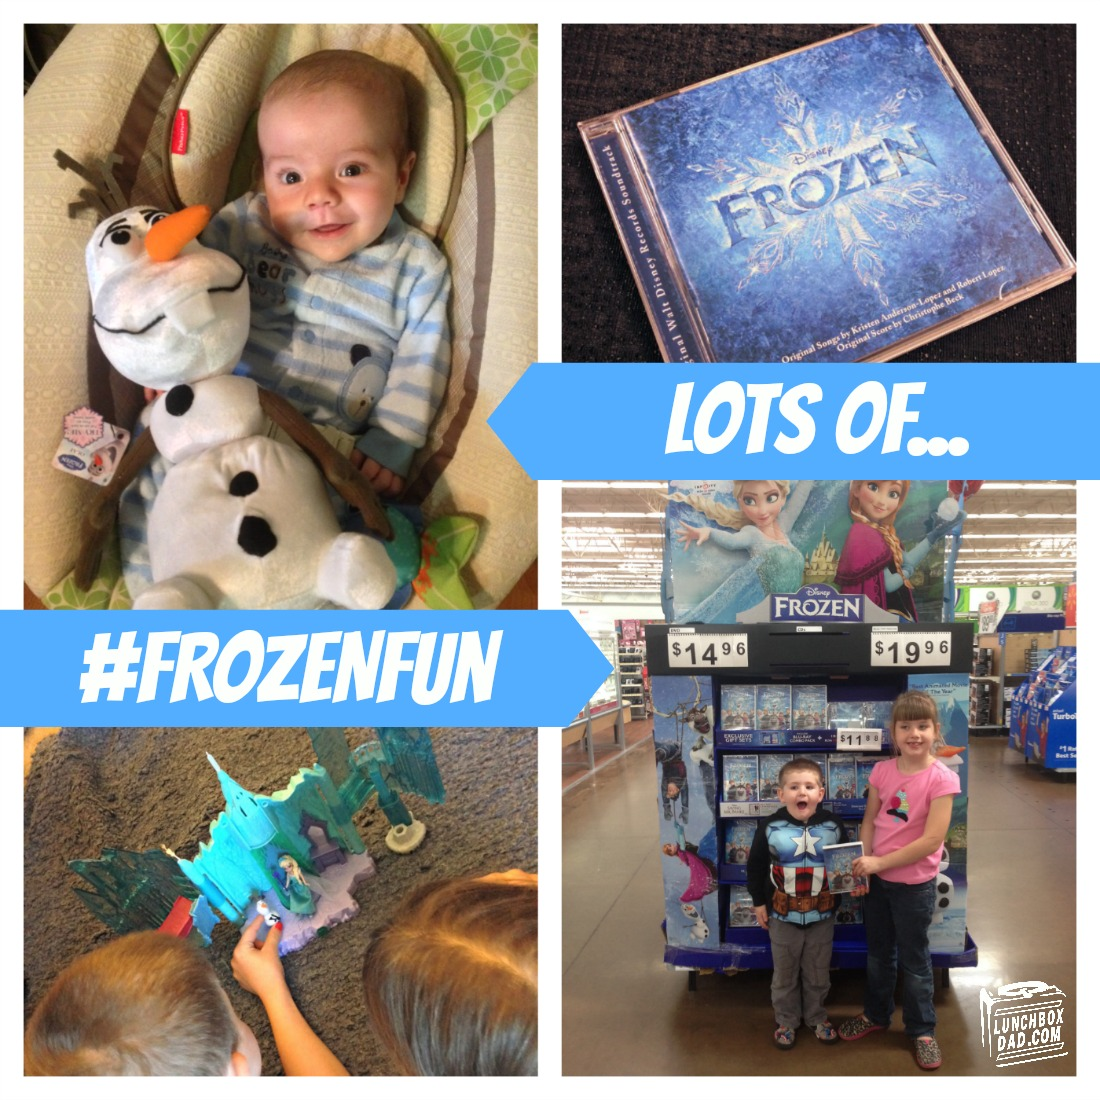 5 ways being a parent is like being a character from FROZEN #FROZENFun #shop #cbias